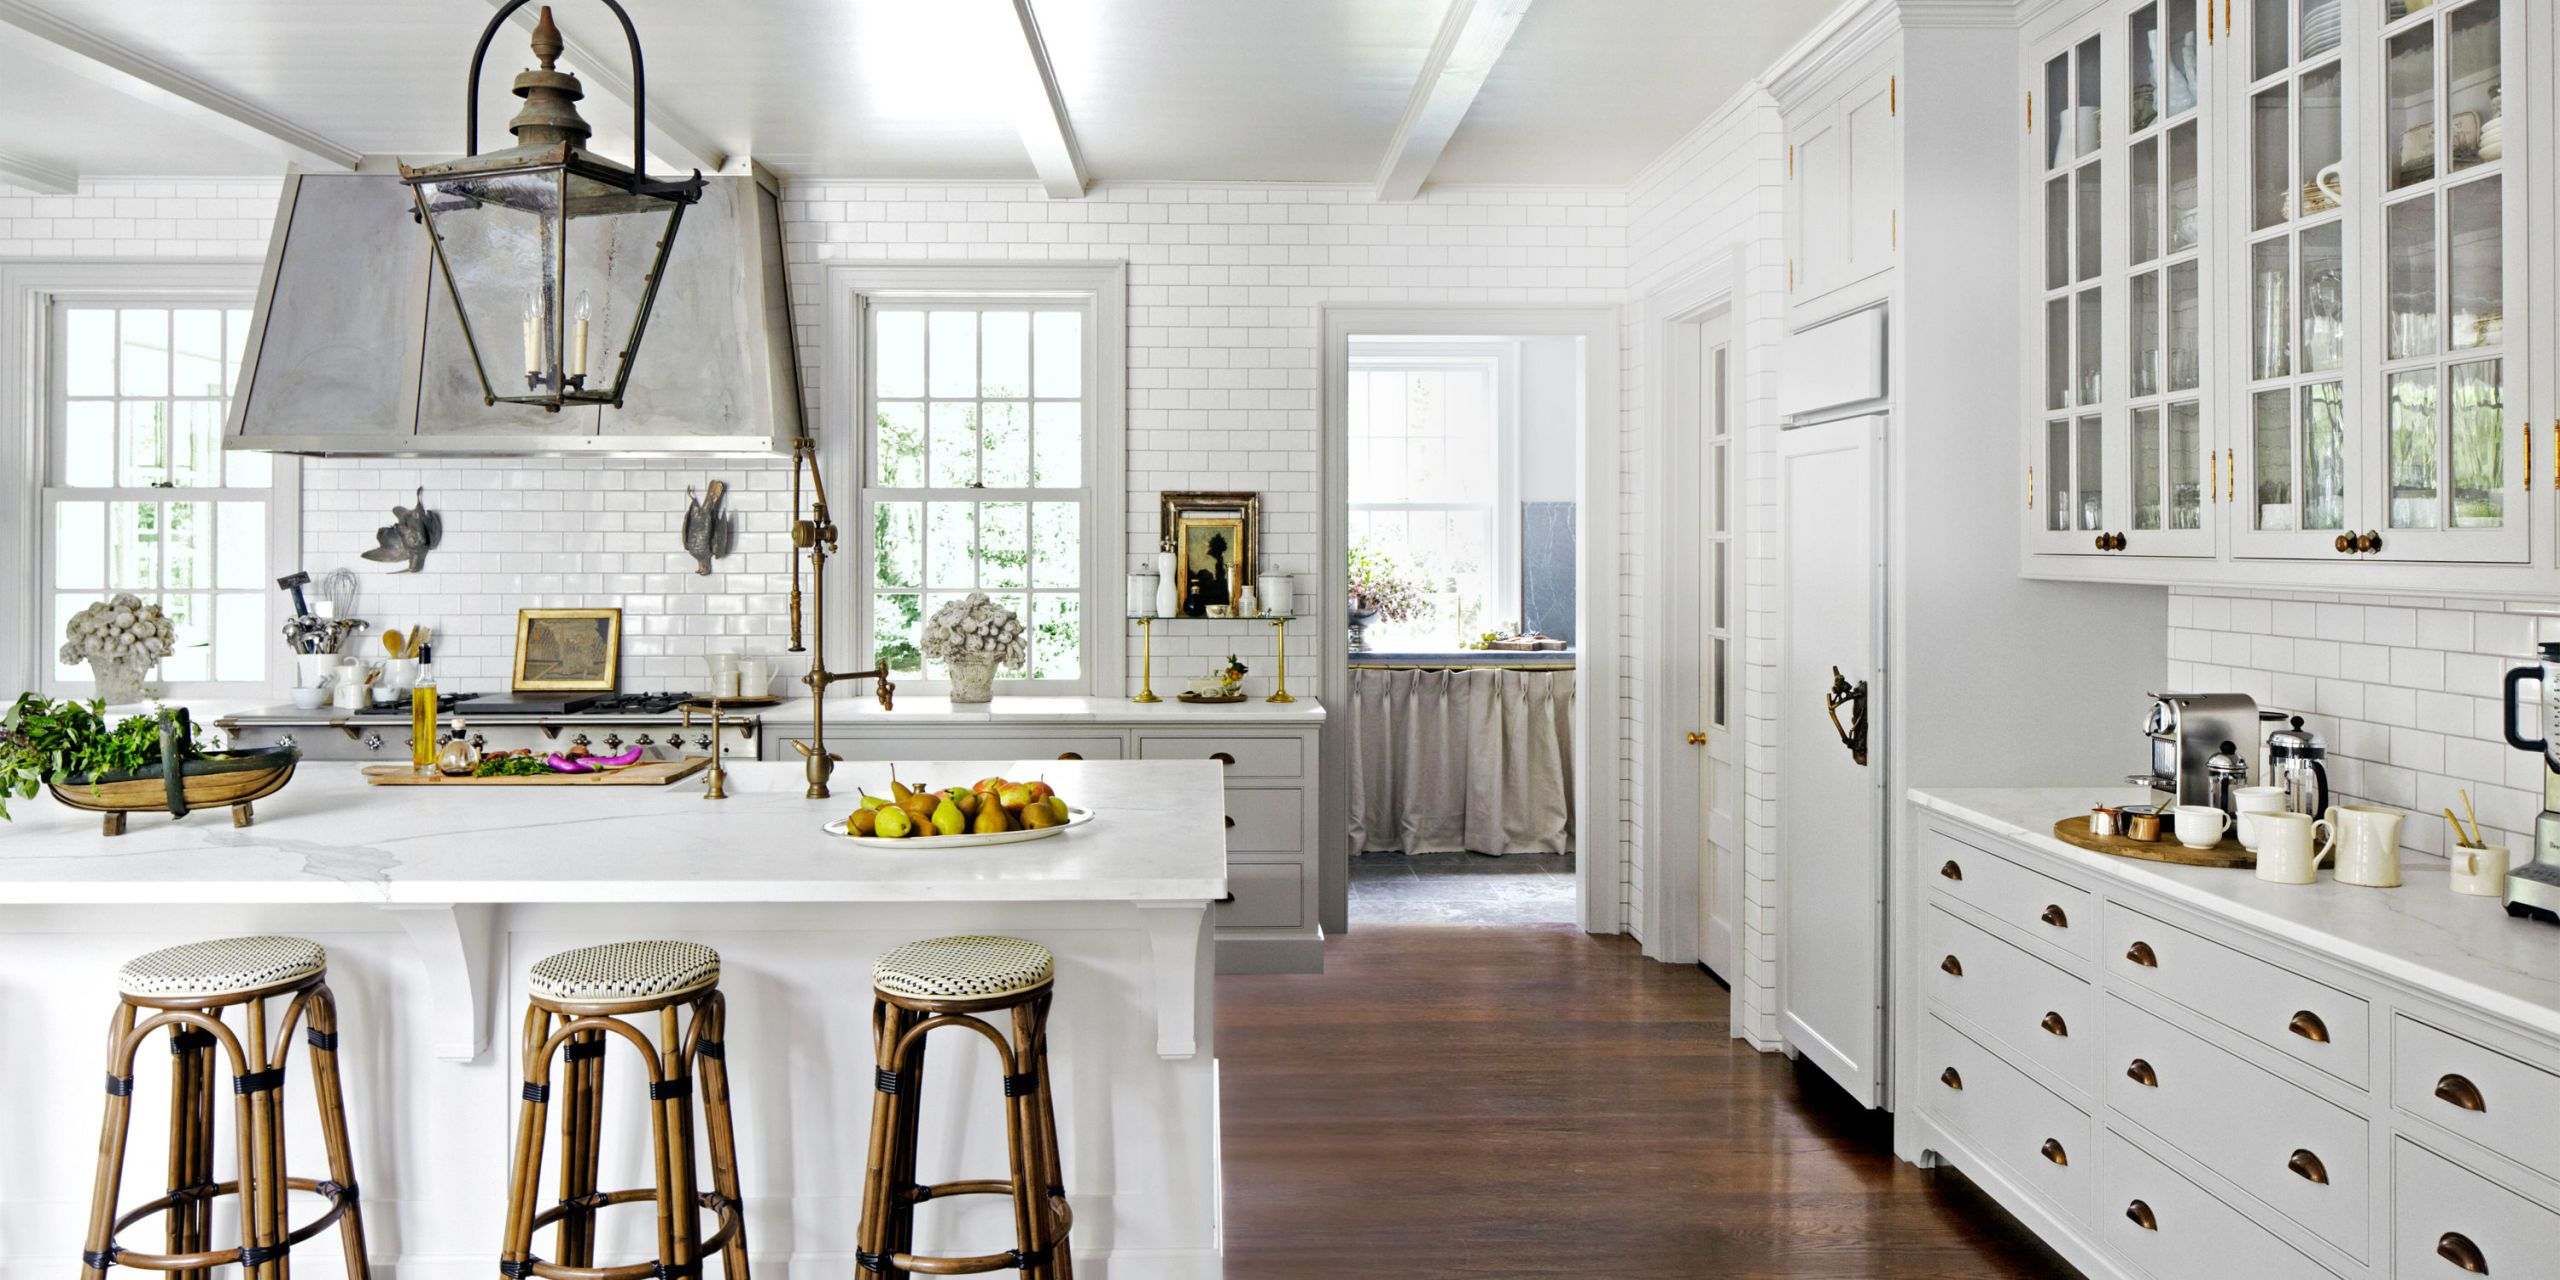 24 Best White Kitchens   Pictures of White Kitchen Design Ideas You can t go wrong with white in the kitchen  so sit back and let these  fabulous ideas and pictures inspire you to take your kitchen from drab to  dazzling